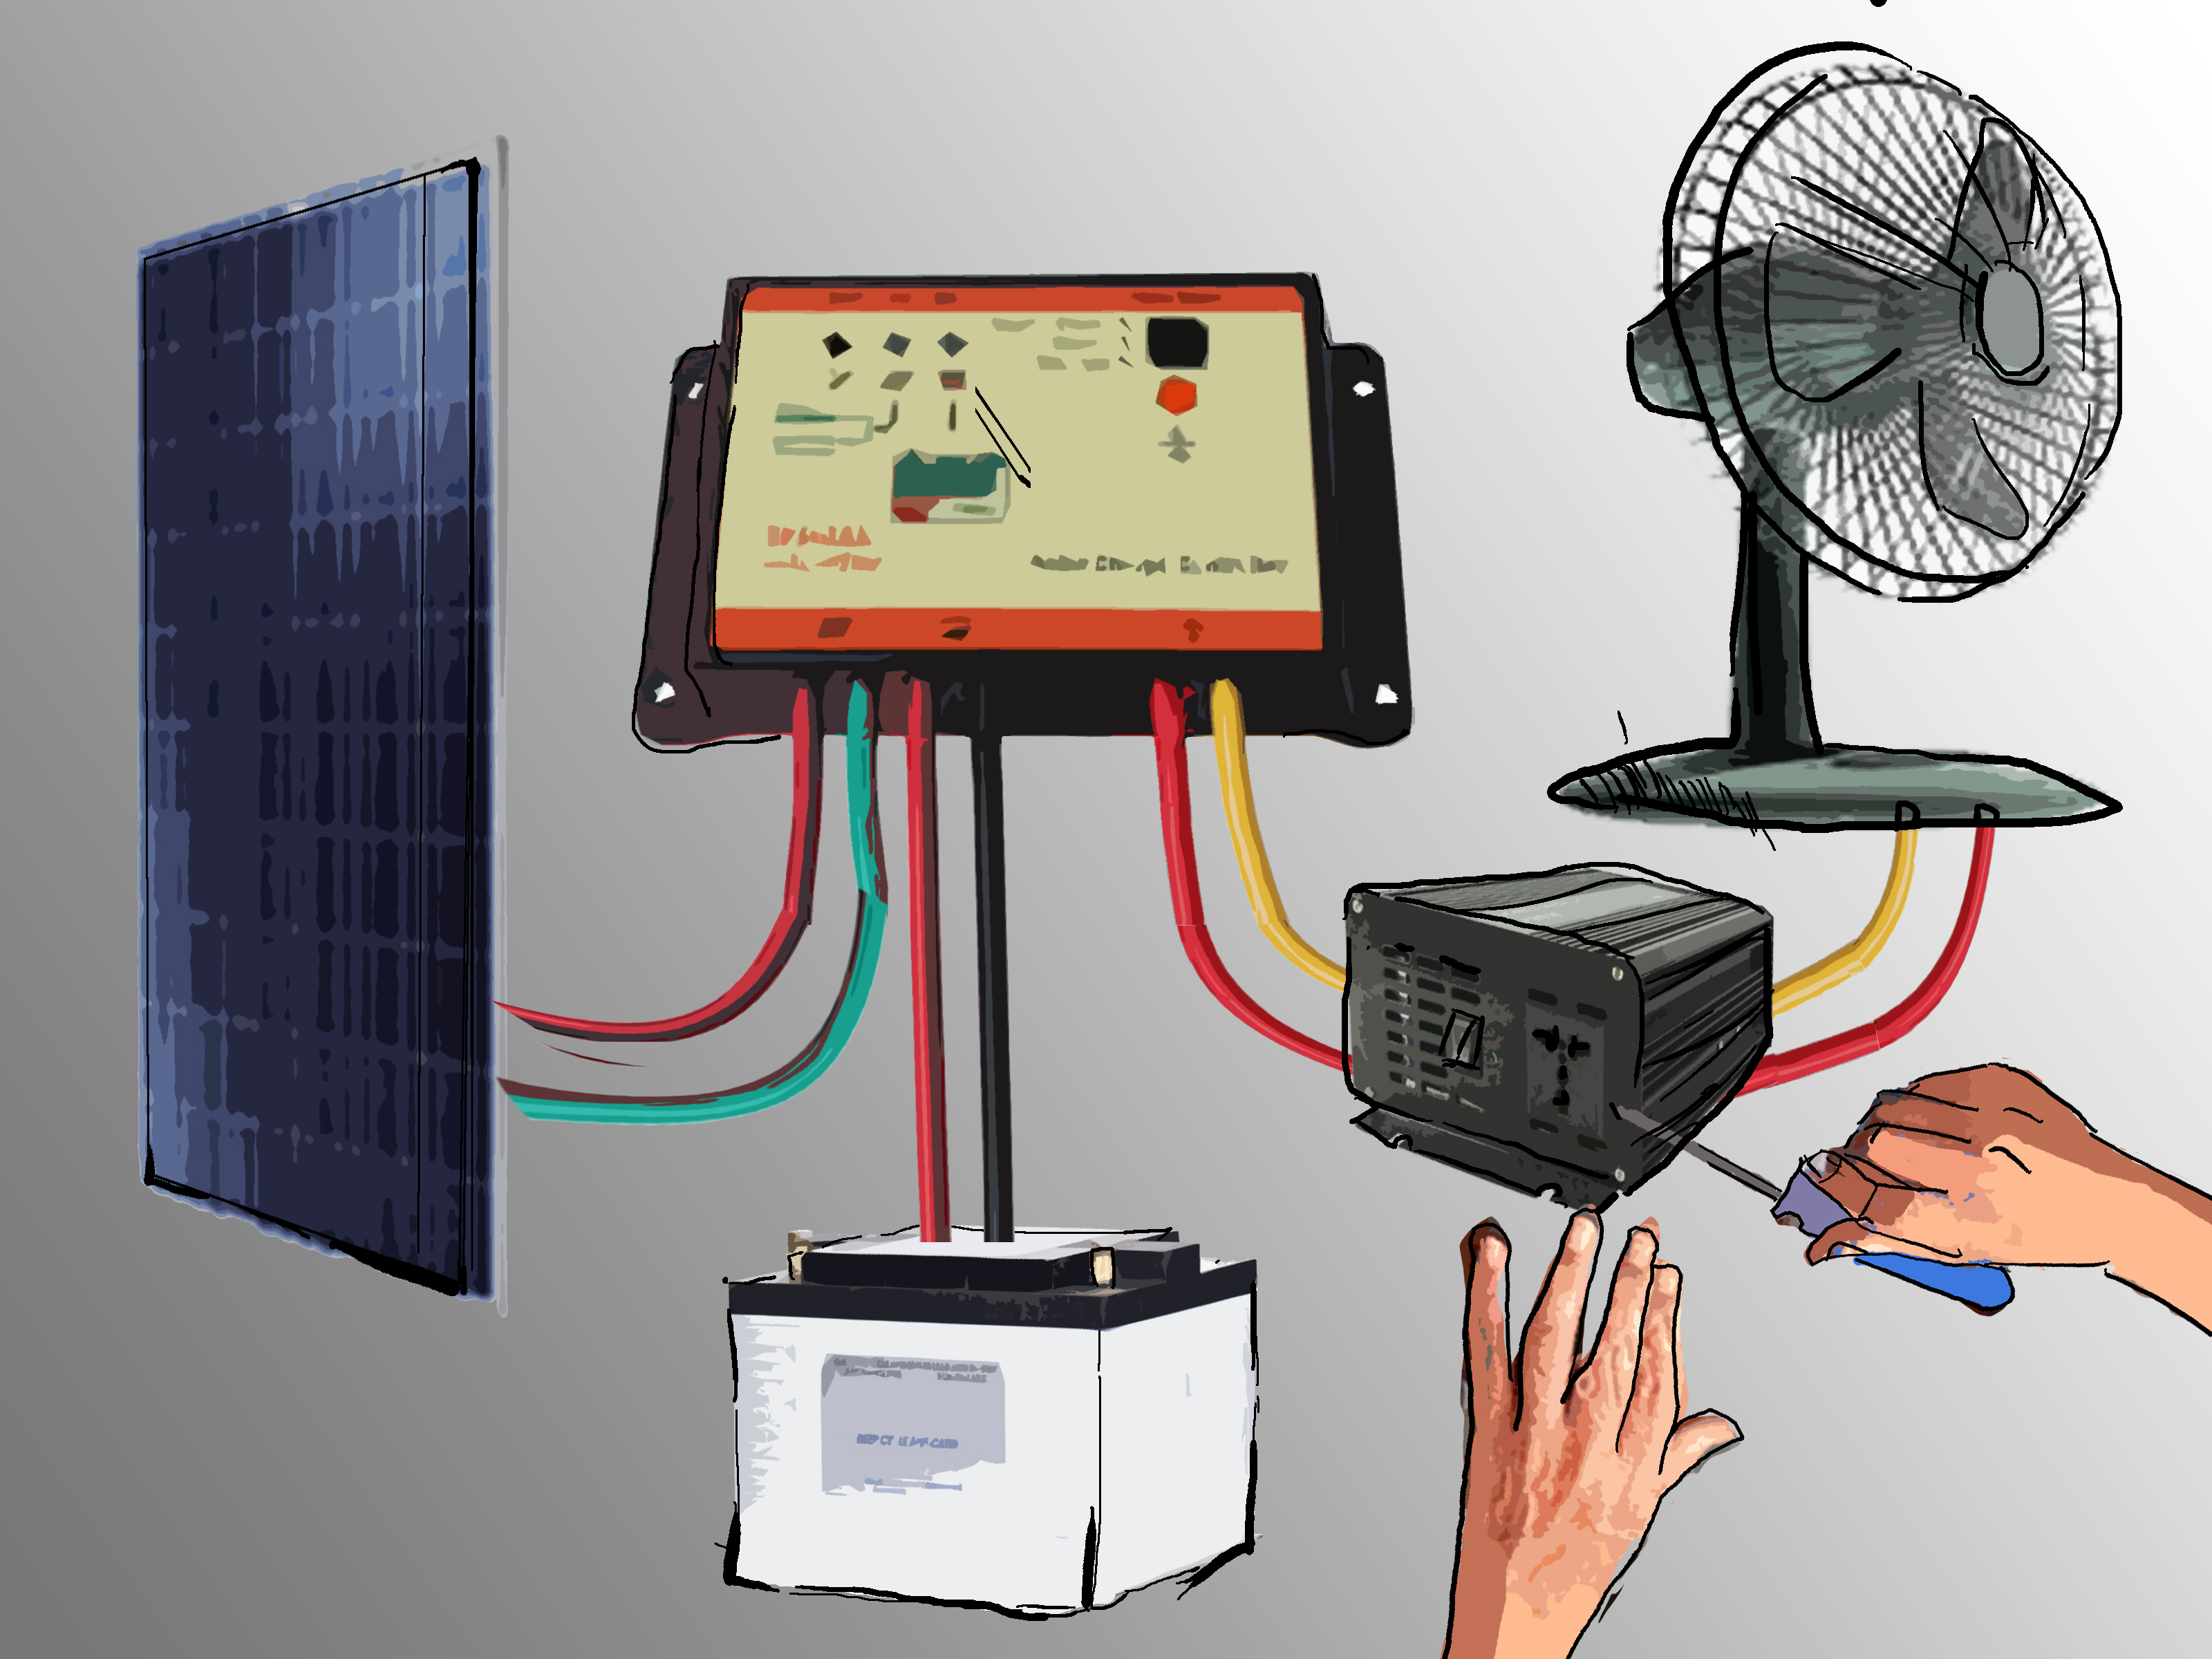 3000w Inverter Wiring Diagram How To Set Up A Small Solar Photovoltaic Power Generator